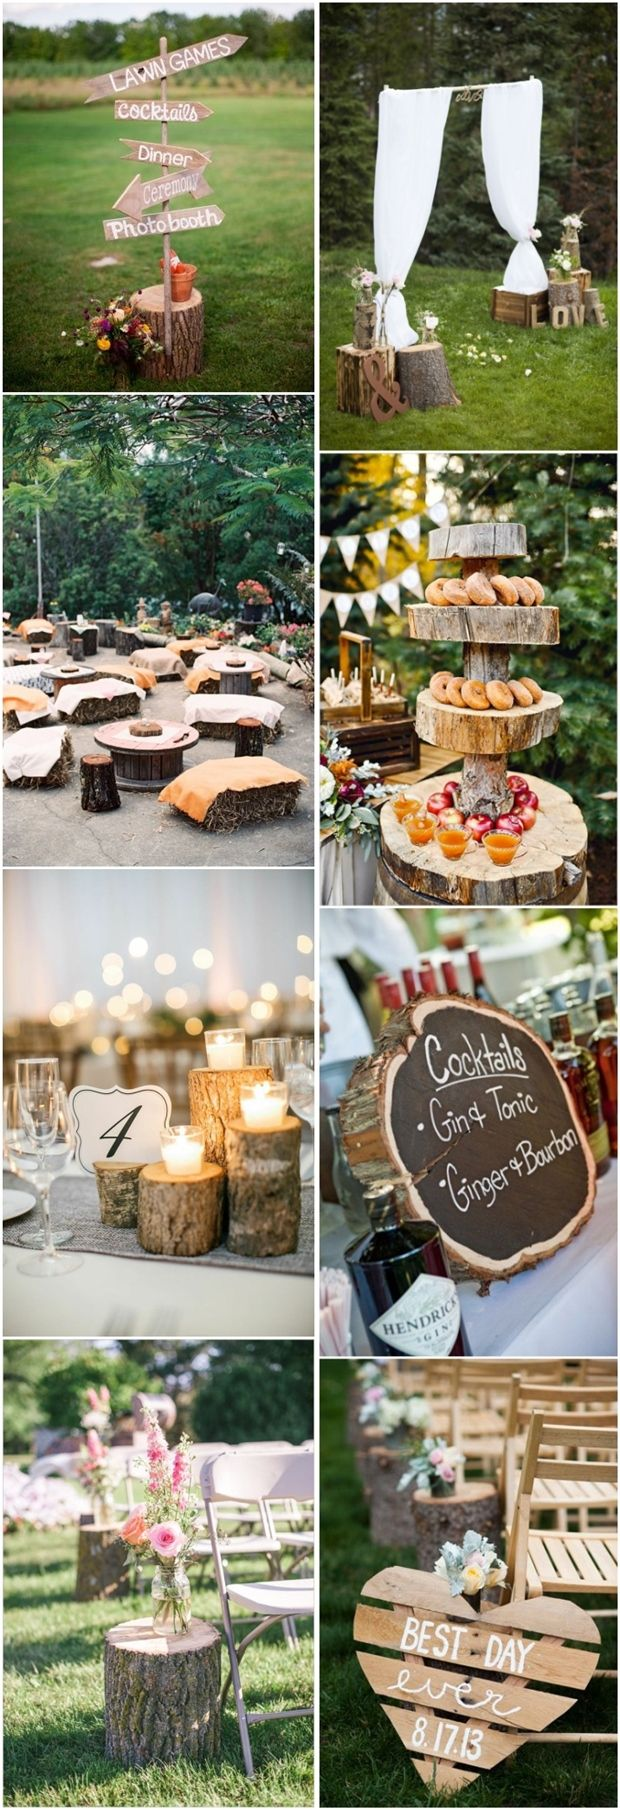 Gallery: rustic country wedding ideas- tree stump wedding decor idea - Deer Pearl Flowers / http://www.deerpearlflowers.com/tree-stumps-wedding-ideas-for-rustic-country-weddings/rustic-country-wedding-ideas-tree-stump-wedding-decor-idea/